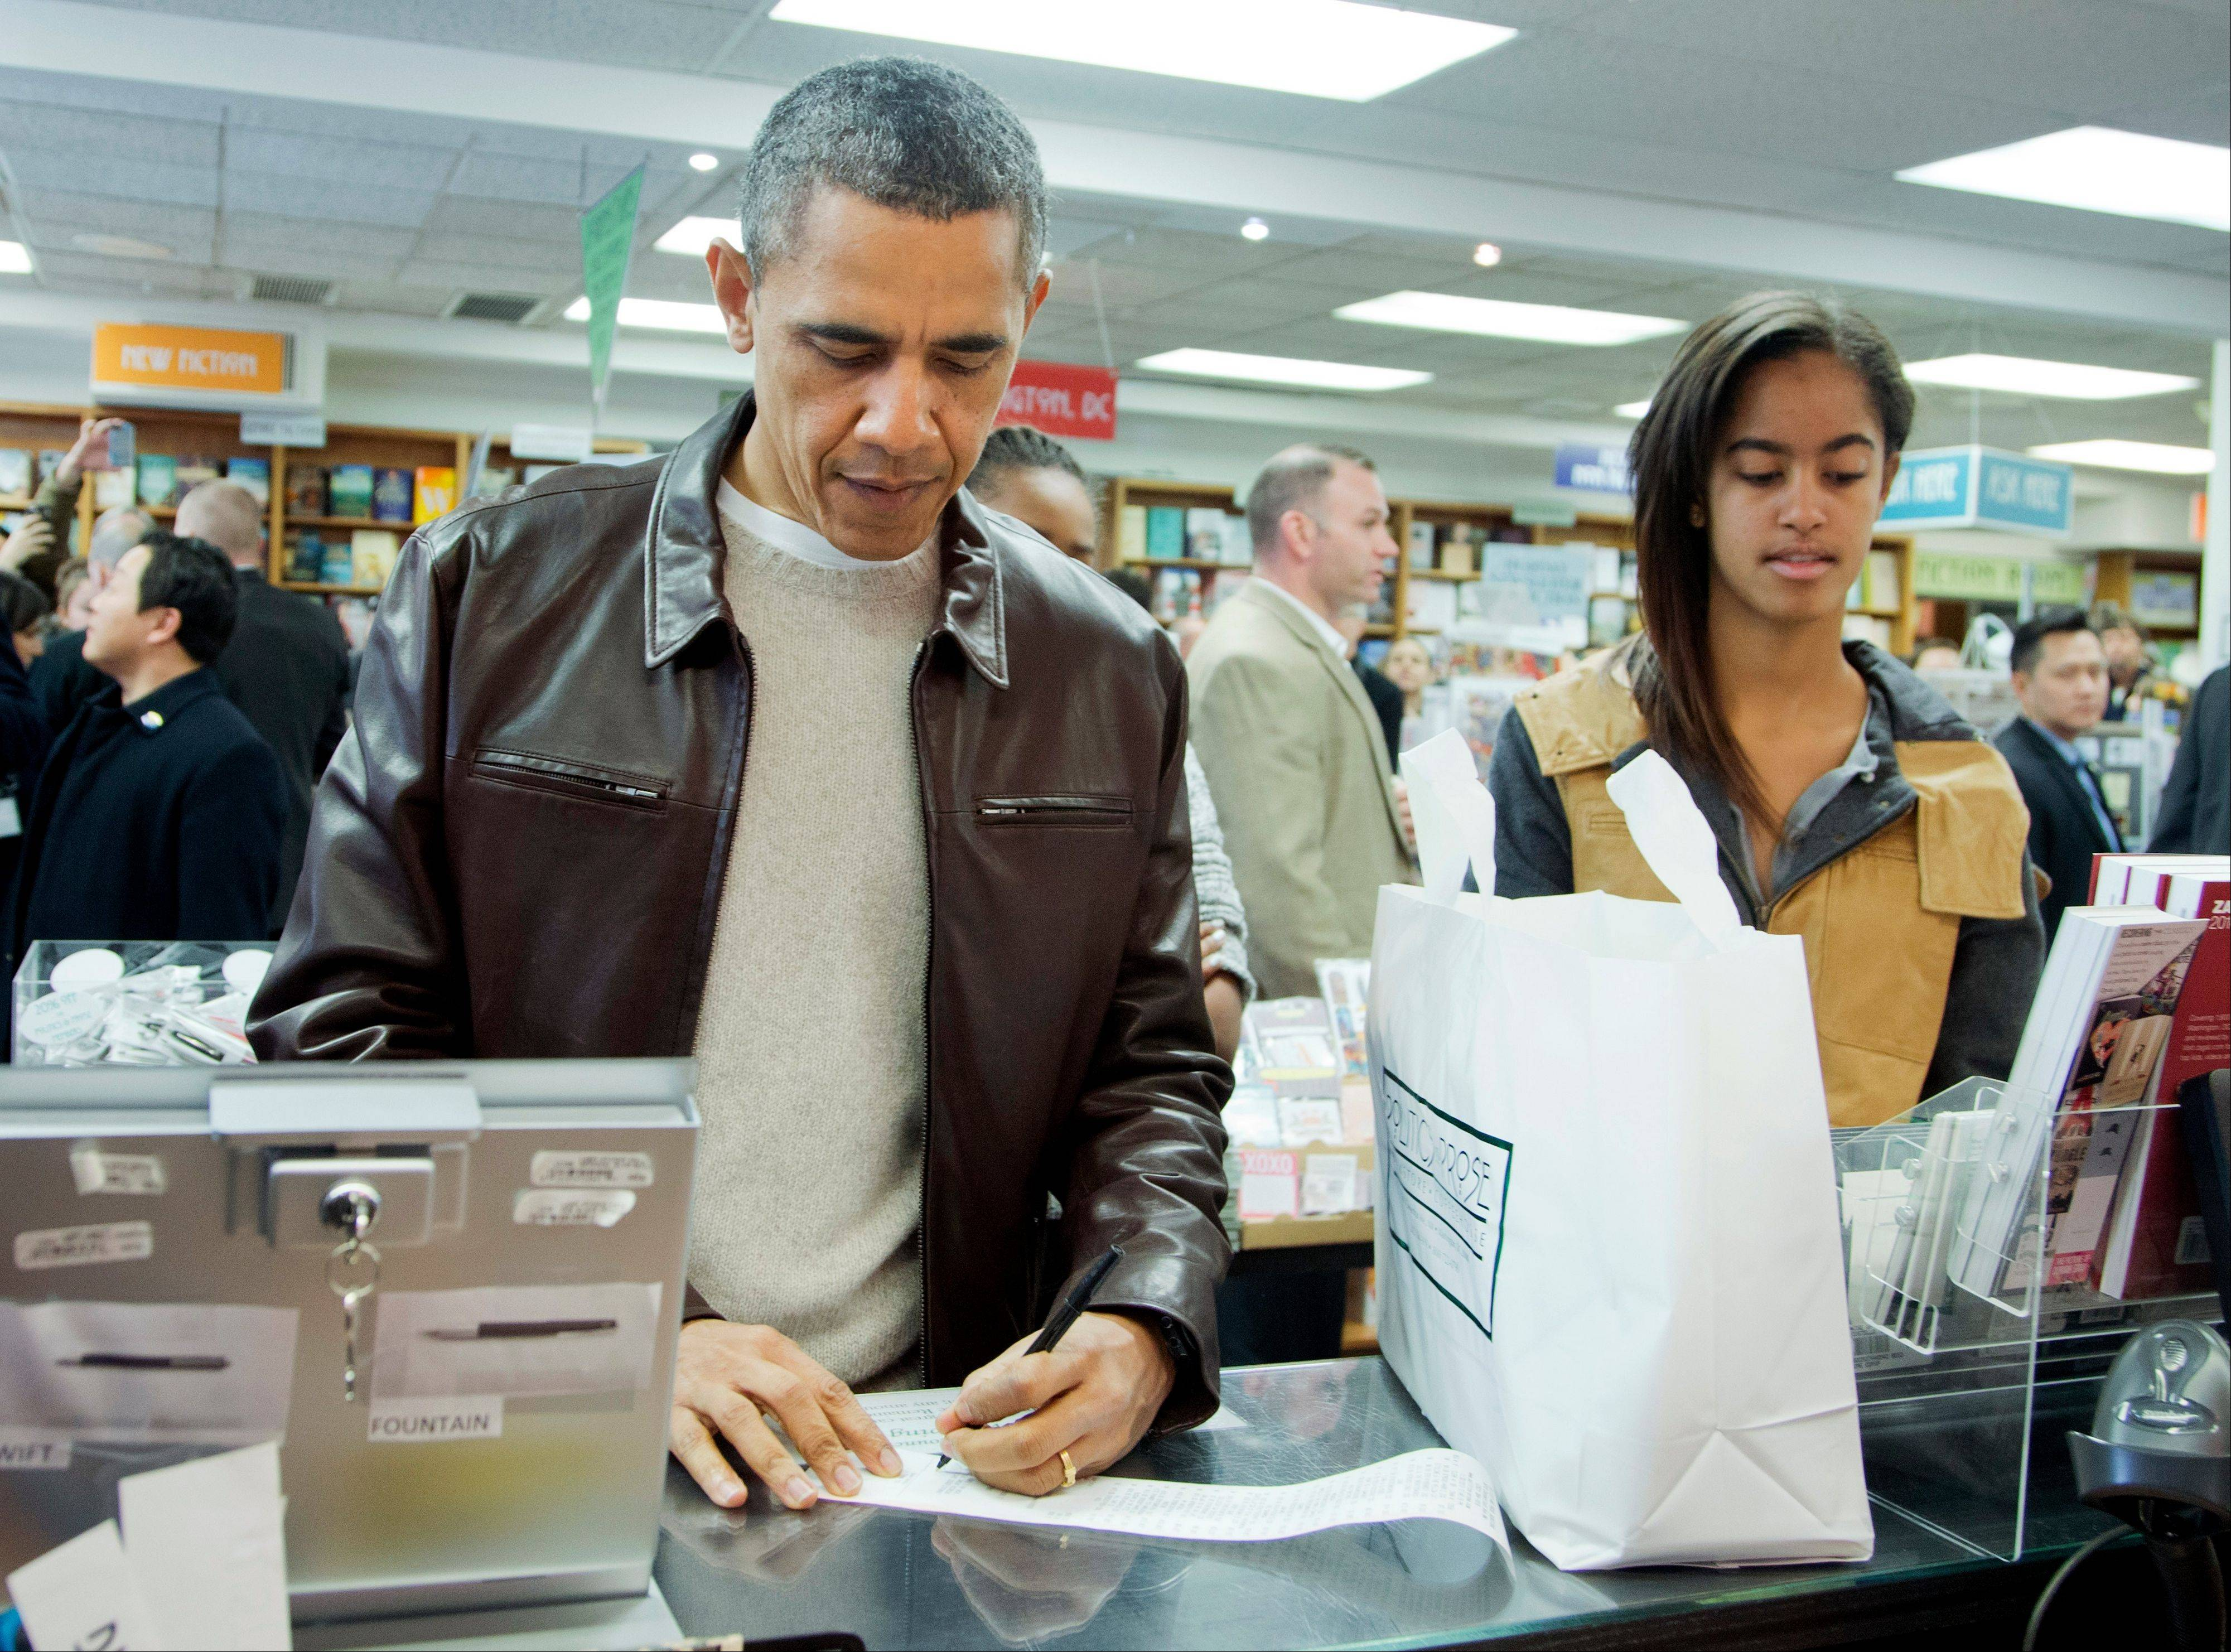 President Barack Obama, with daughters Sasha, center partially hidden, and Malia, pays for his purchase Saturday at the local bookstore Politics and Prose in Washington.